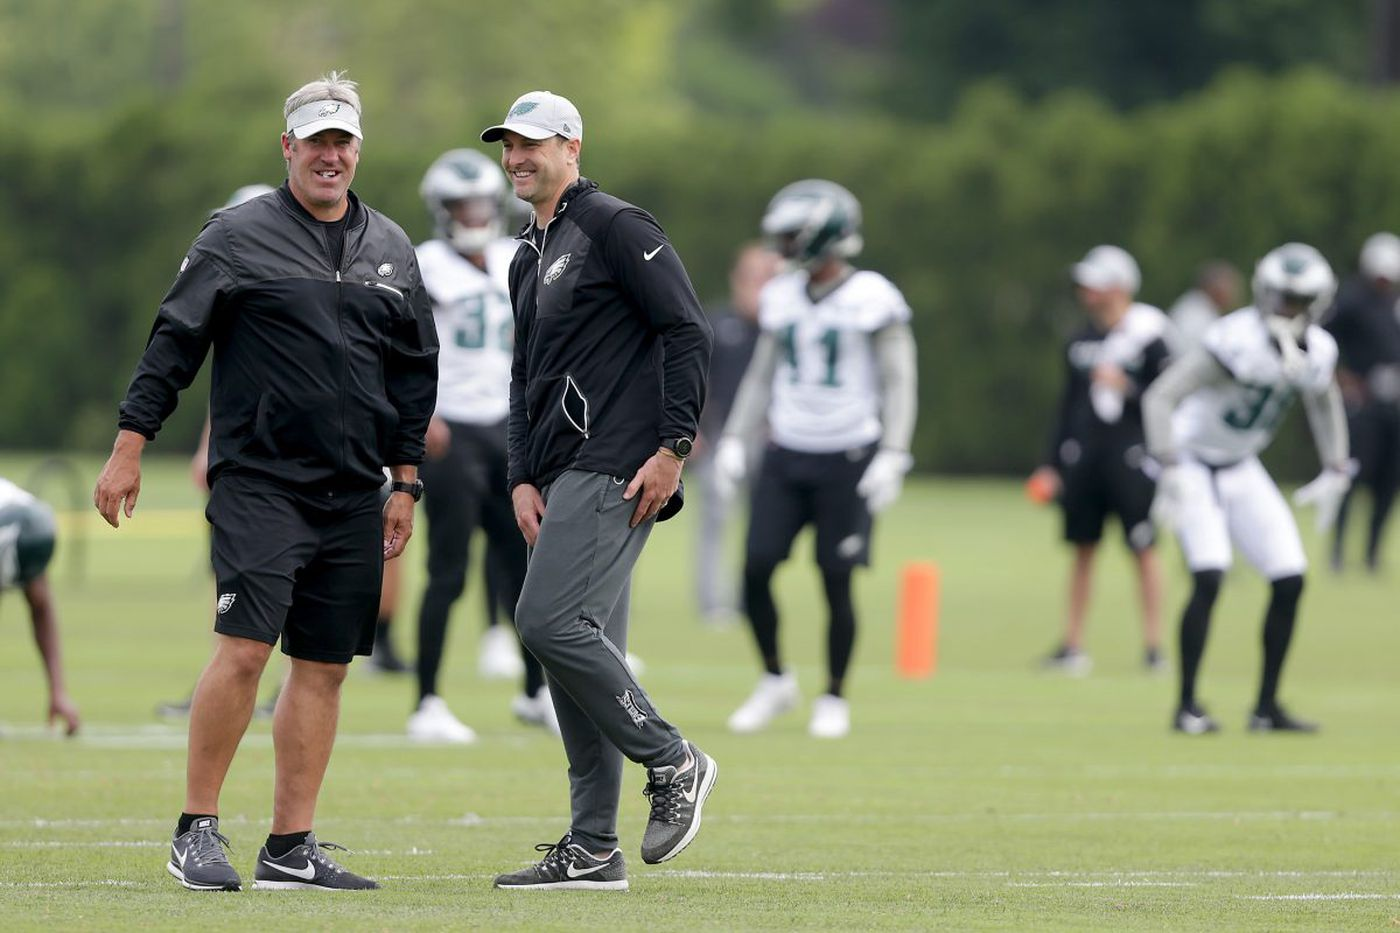 New Eagles offensive coordinator Mike Groh: 'It's the Philadelphia Eagles' offense'